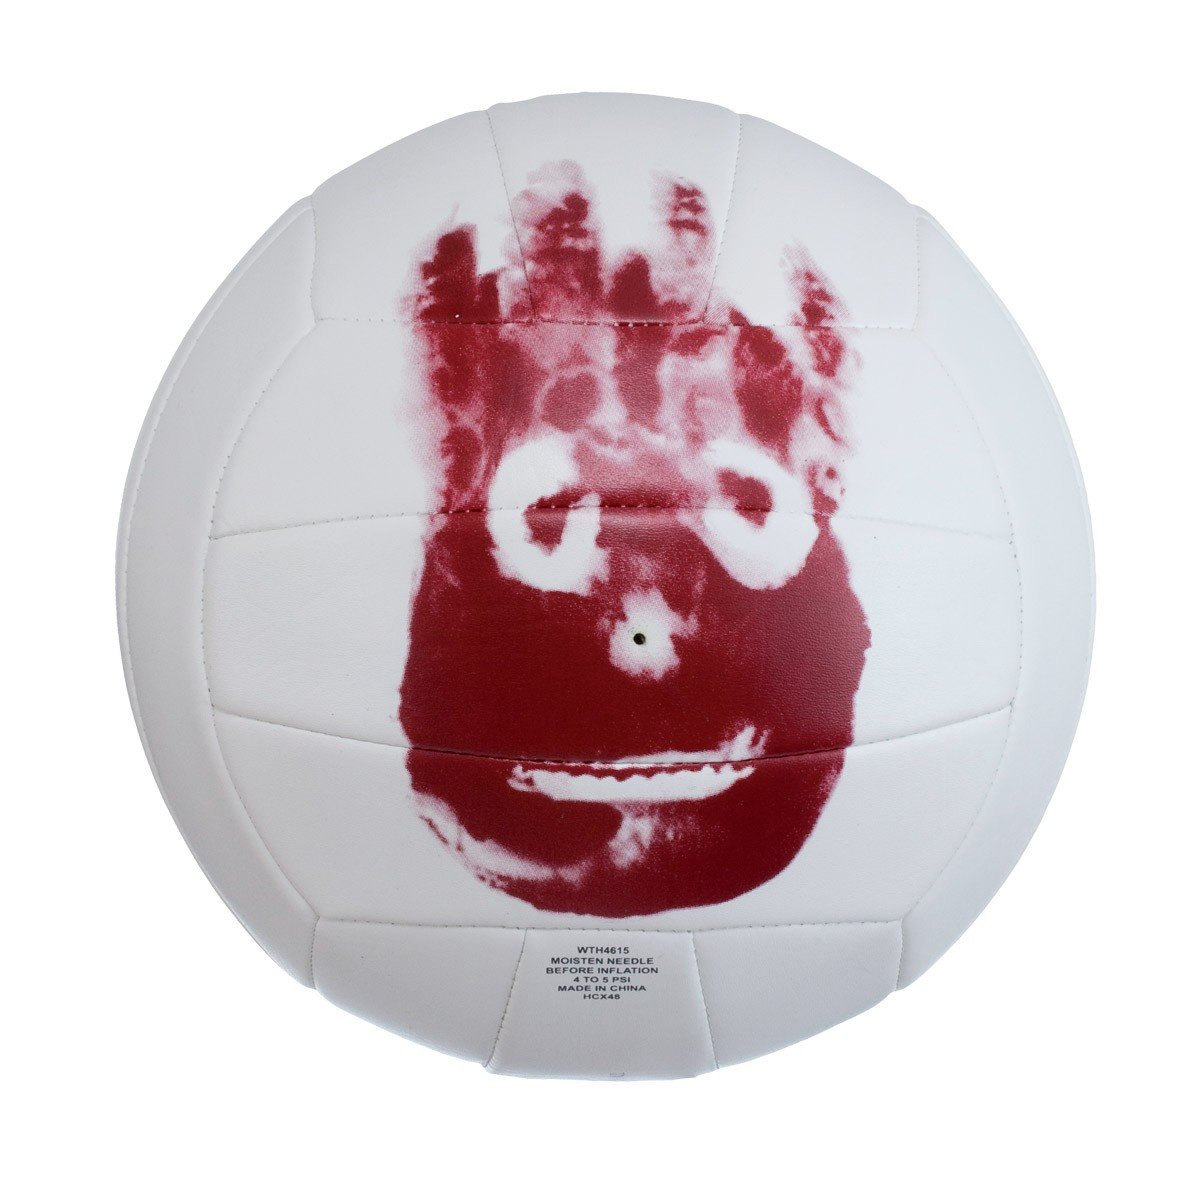 Wilson Mr. Wilson (Seul au monde) Ballon de beach volley Blanc WTH4615XDEF ballon de volley ballon de volley ball ballon de volleyball